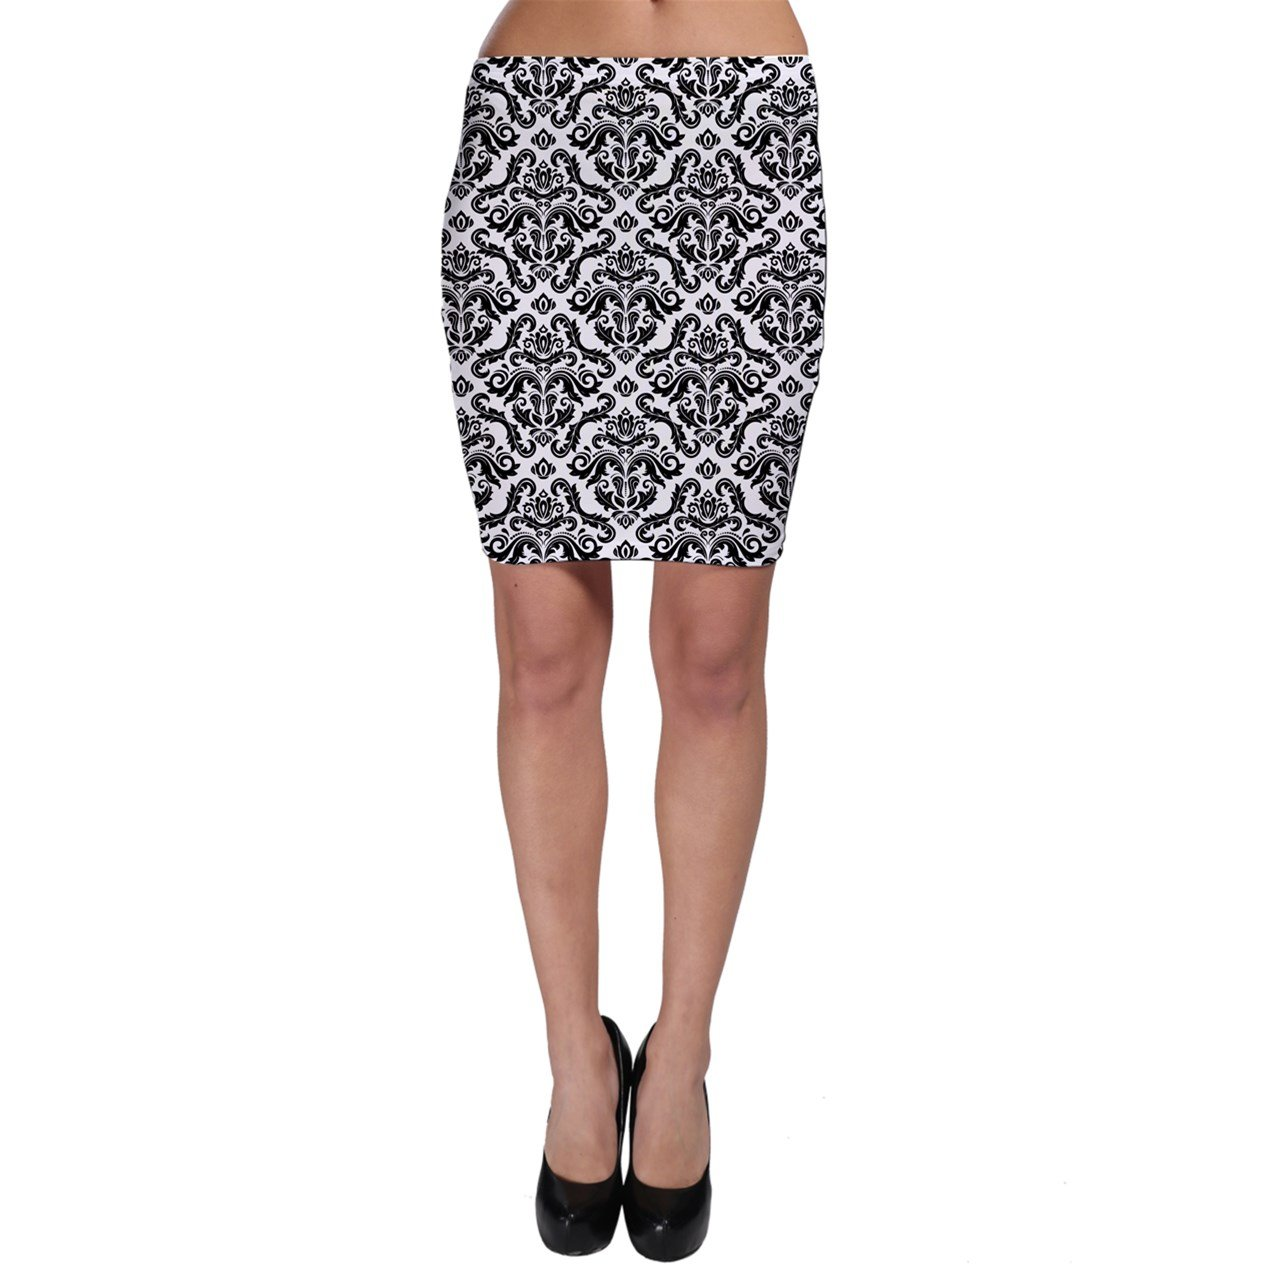 CowCow Black Oriental Fine Pattern with Damask Arabesque and Floral Bodycon Skirt